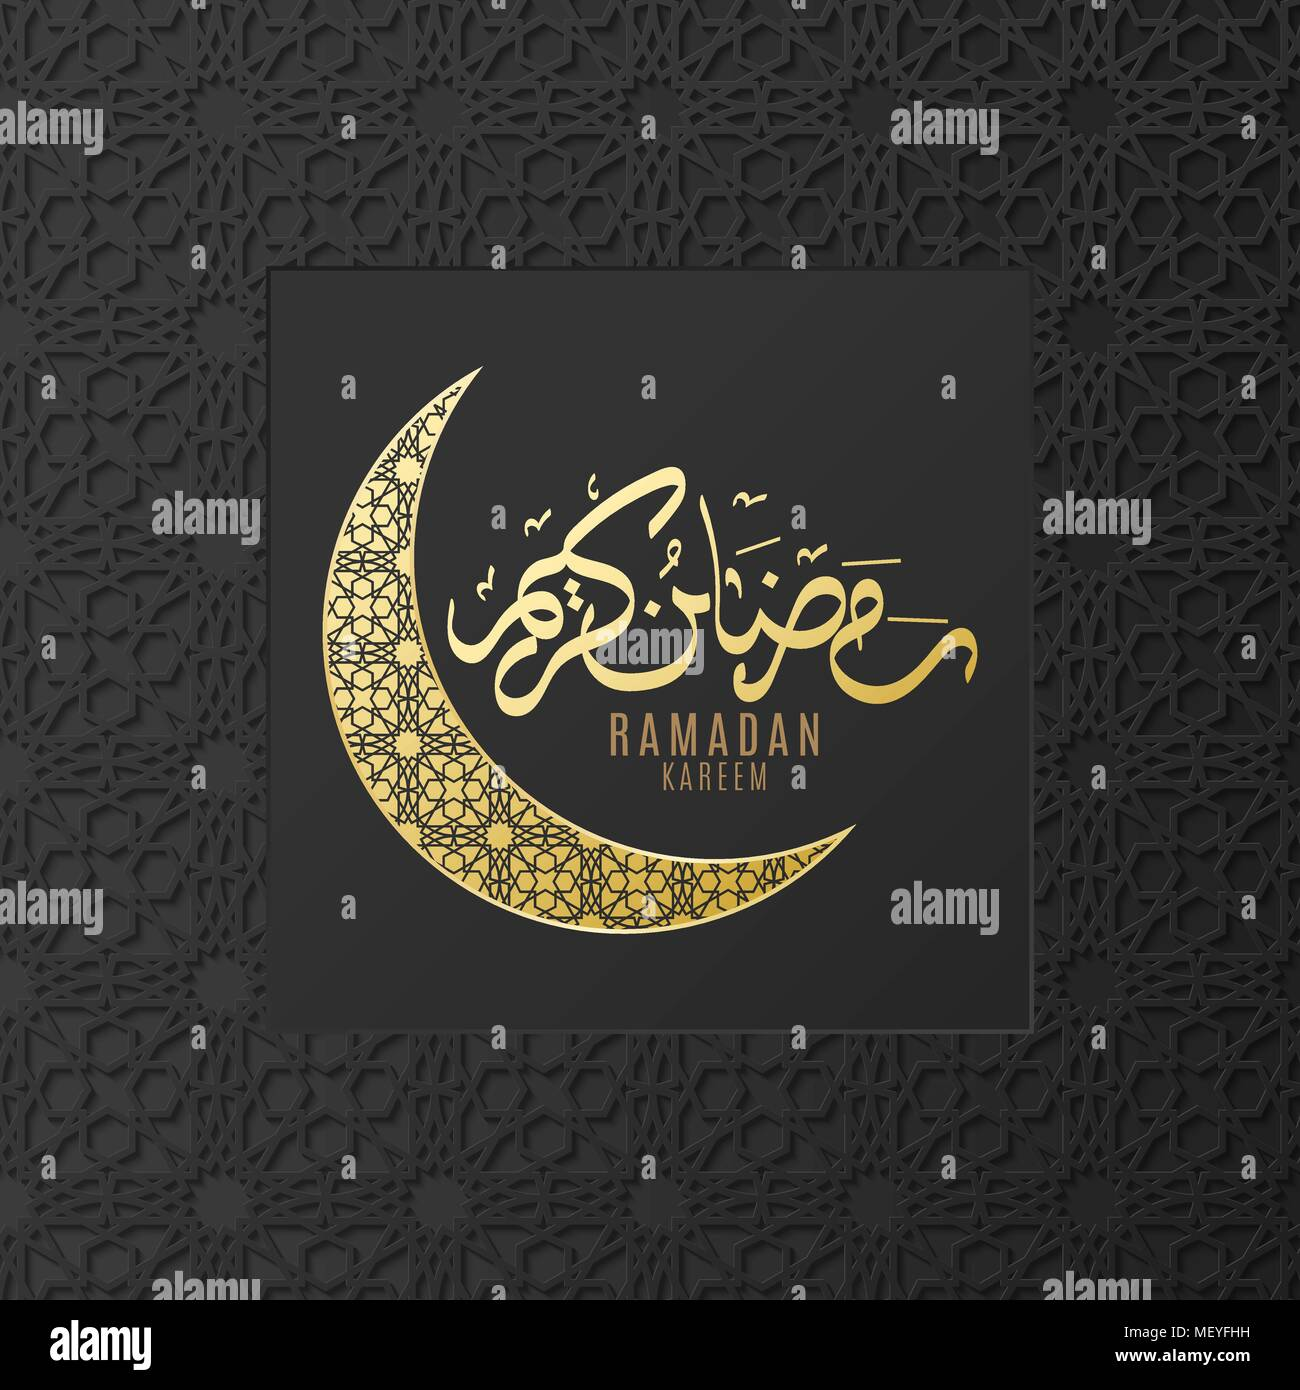 Download Moon Star Light Eid Al-Fitr Decorations - ramadan-kareem-gold-moon-islamic-geometric-3d-ornament-arabic-background-hand-drawn-calligraphy-religion-holy-month-cover-banner-eid-mubarak-MEYFHH  Gallery_989013 .jpg